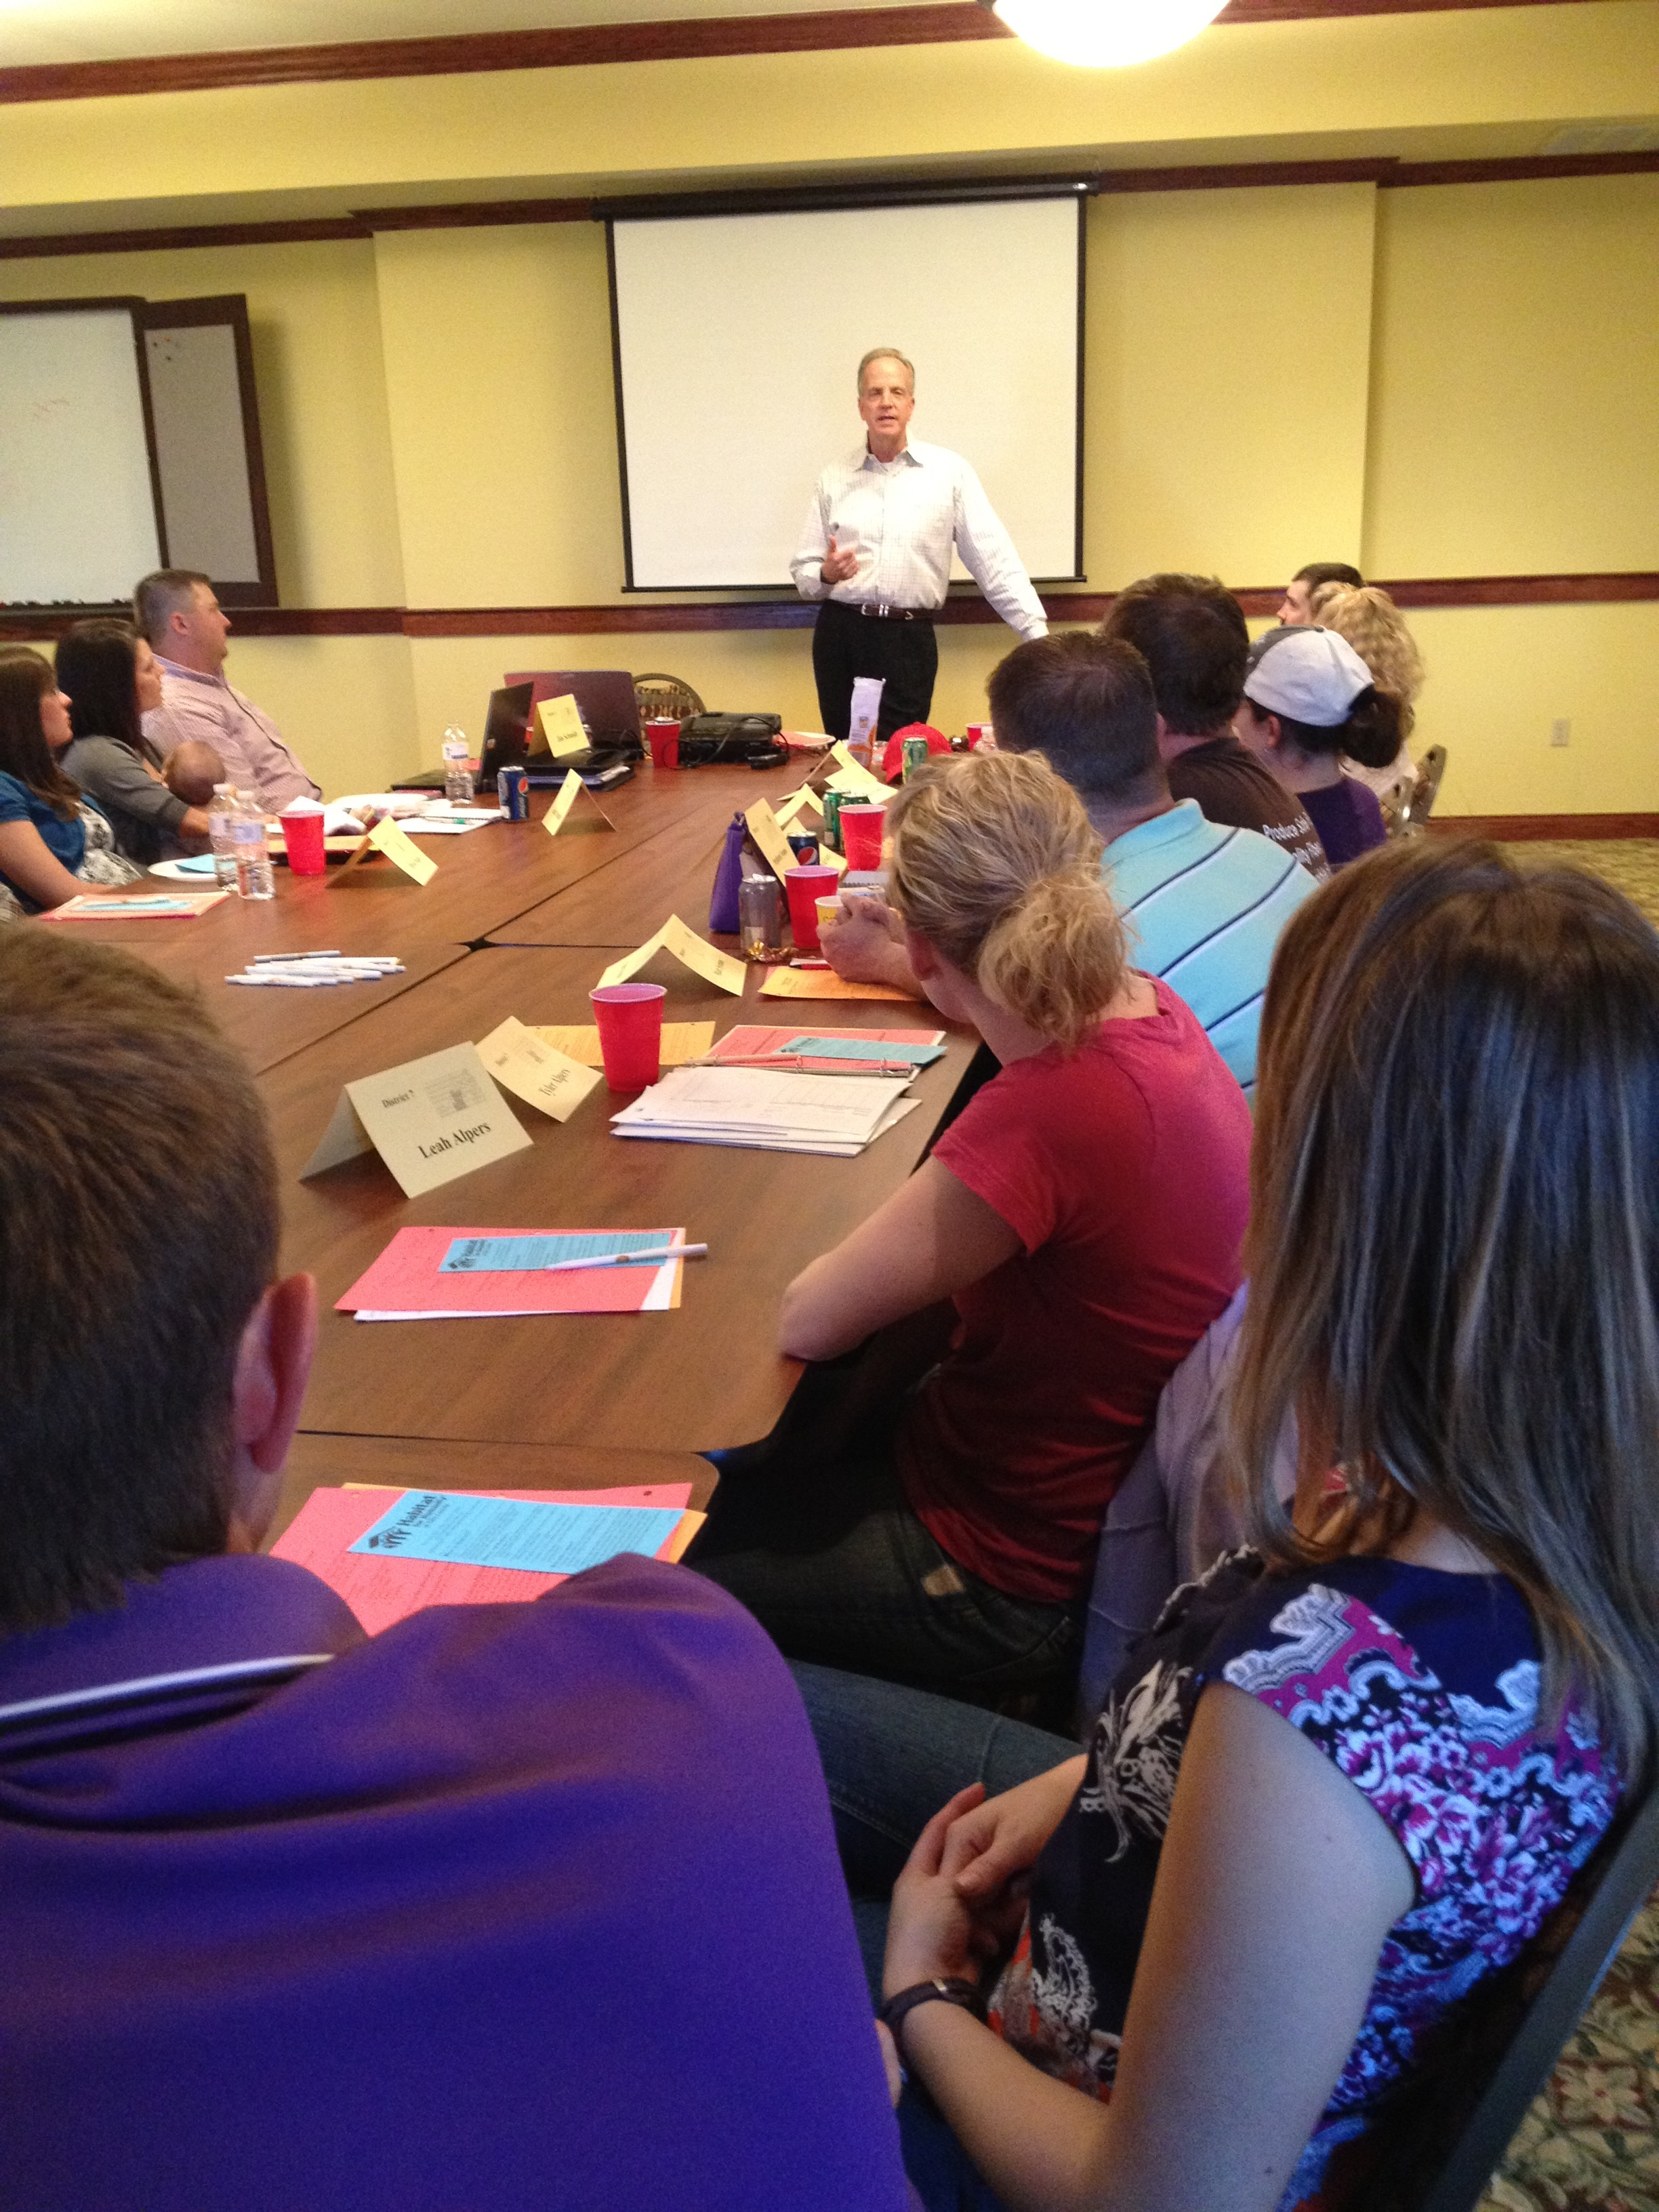 Speaking to KFB Young Farmers & Ranchers